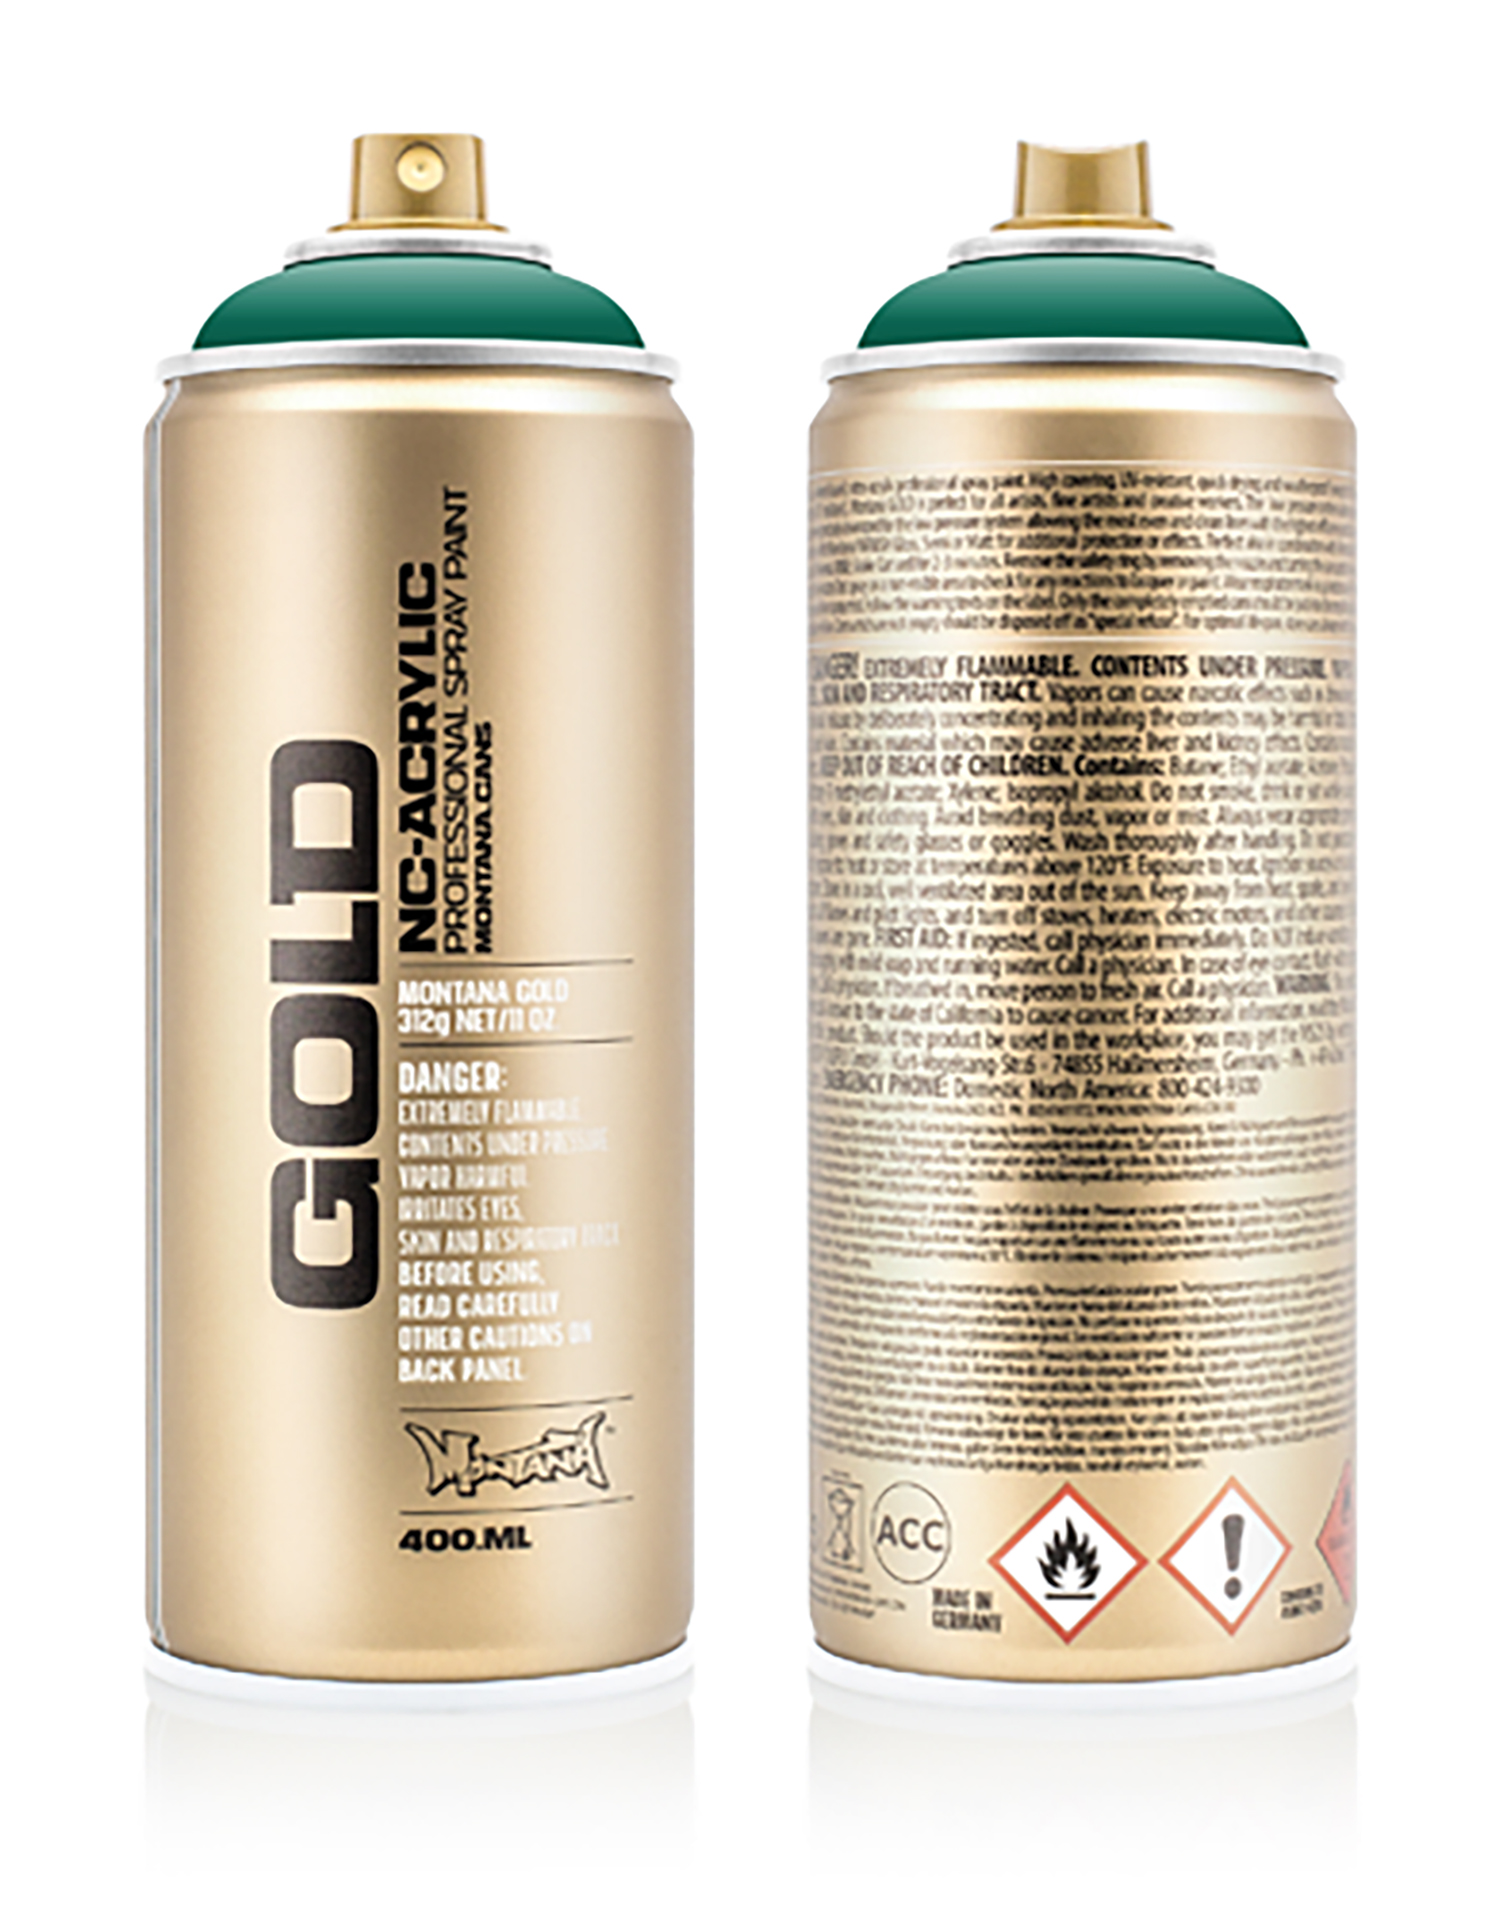 MONTANA-GOLD-SPRAY-400ML-G-6160